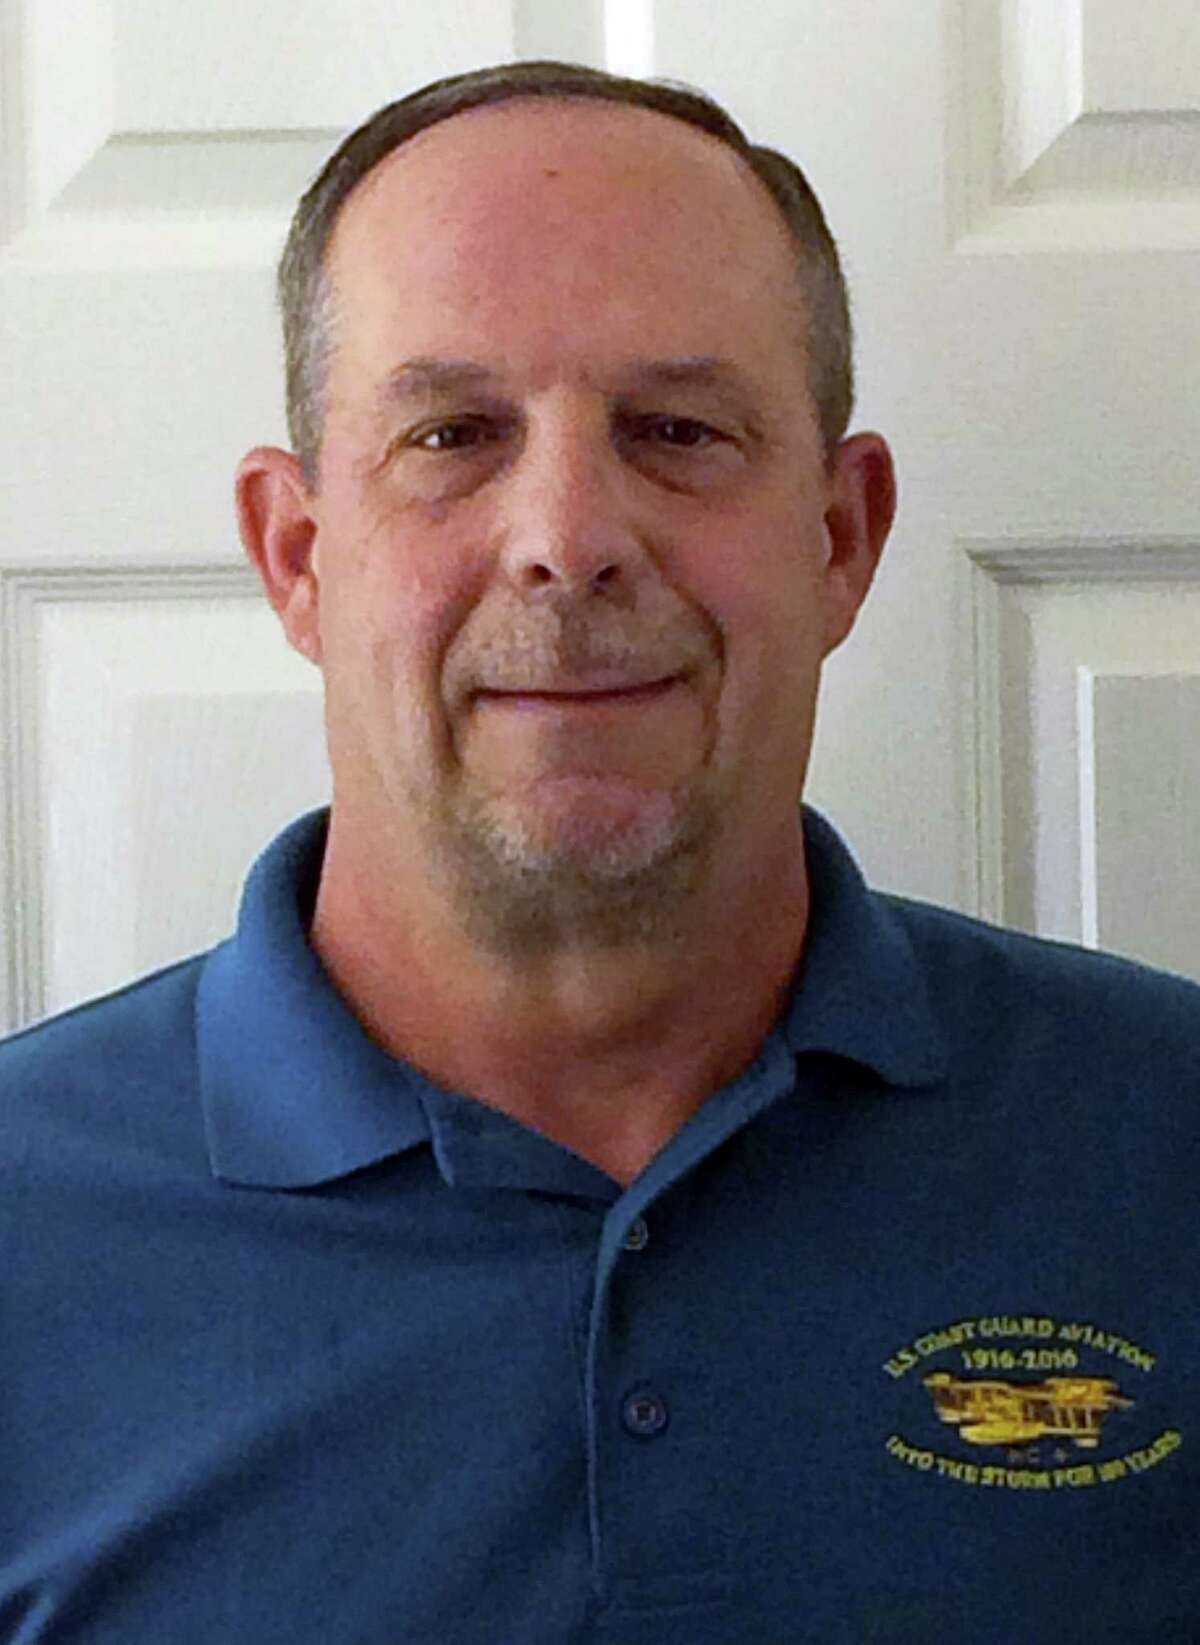 This Nov. 9, 2016 selfie photo provided by retired U.S. Coast Guard Capt. William Peterson shows Peterson in Mystic, Conn. Peterson will be inducted Nov. 10, 2016, into the Wall of Gallantry at the Coast Guard Academy in New London, Conn. He will be honored for helping rescue nine colleagues whose cargo plane crashed on a hillside on the western Aleutian Island of Attu off Alaska in 1982.